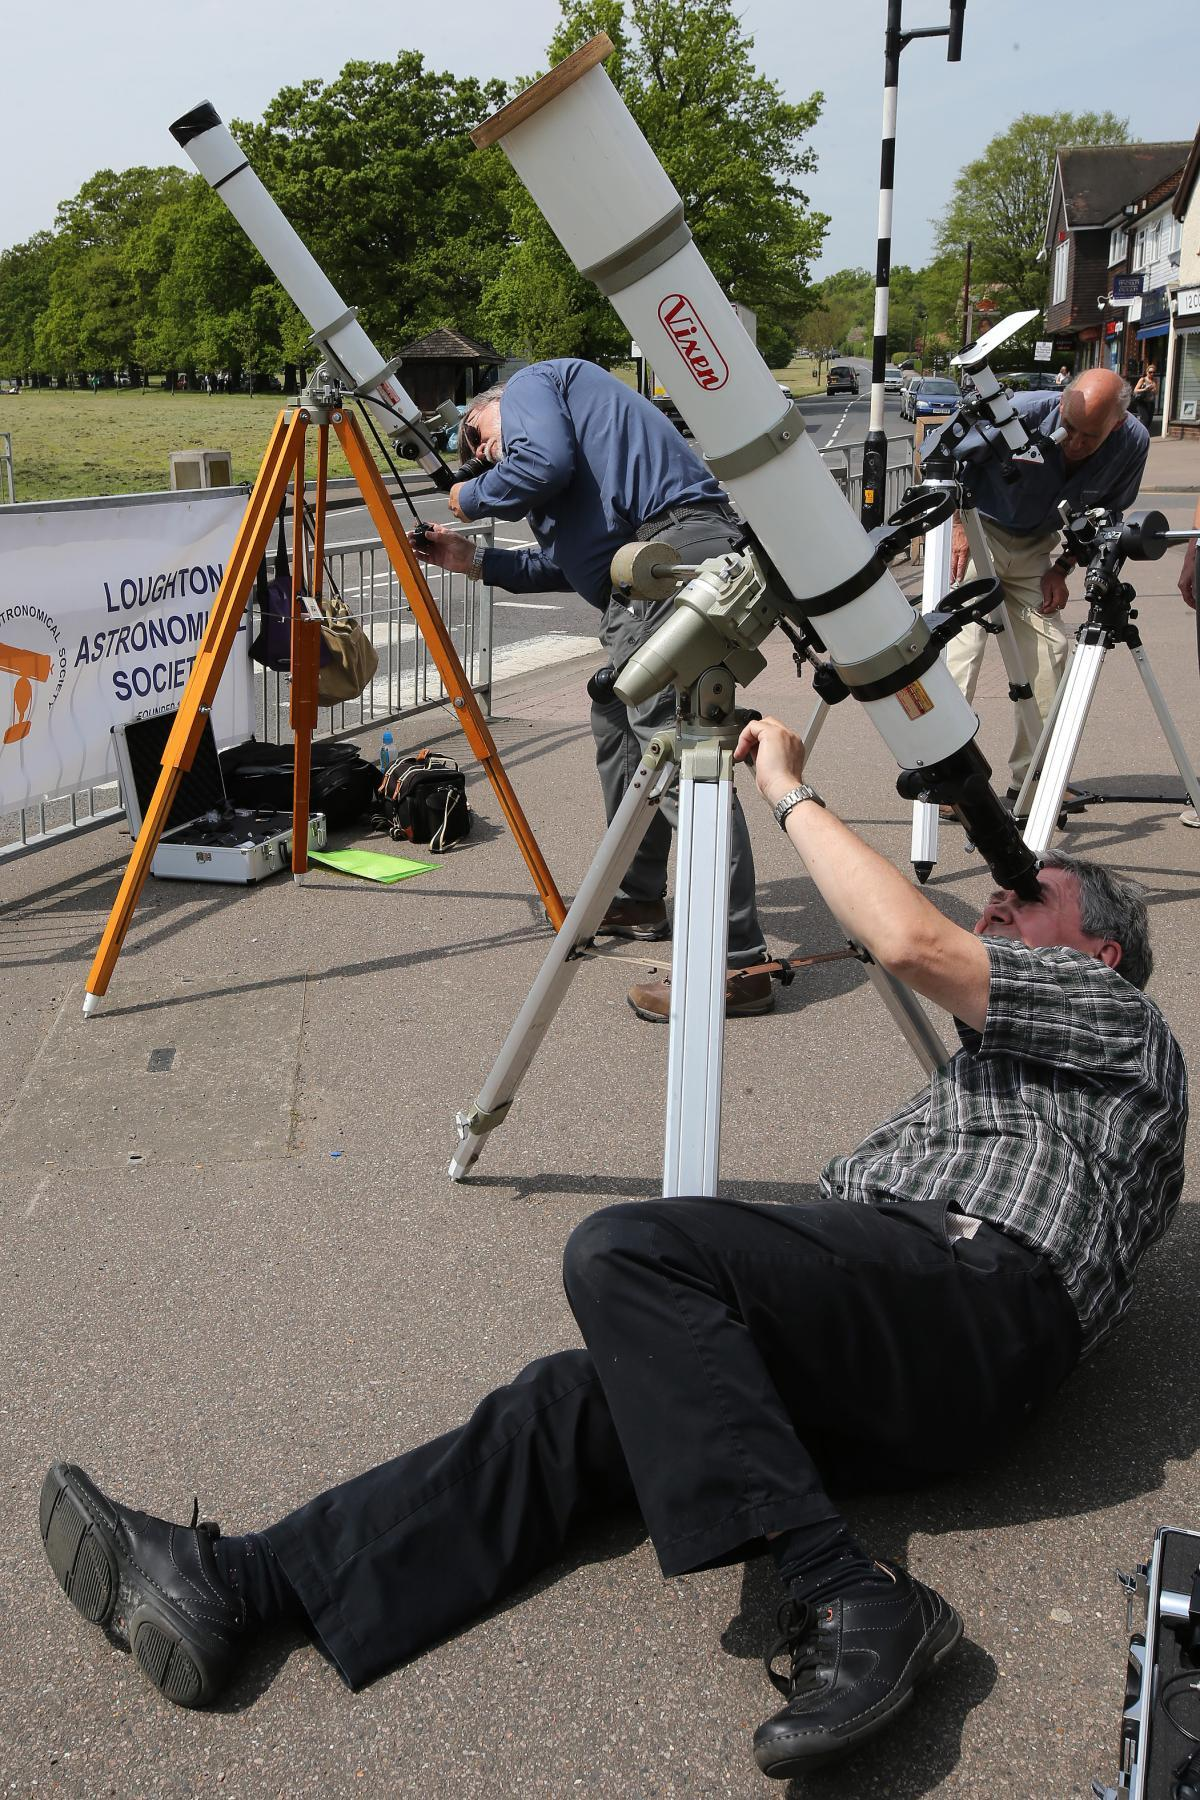 Astronomers in Theydon Bois watch Mercury transit the sun in 2016